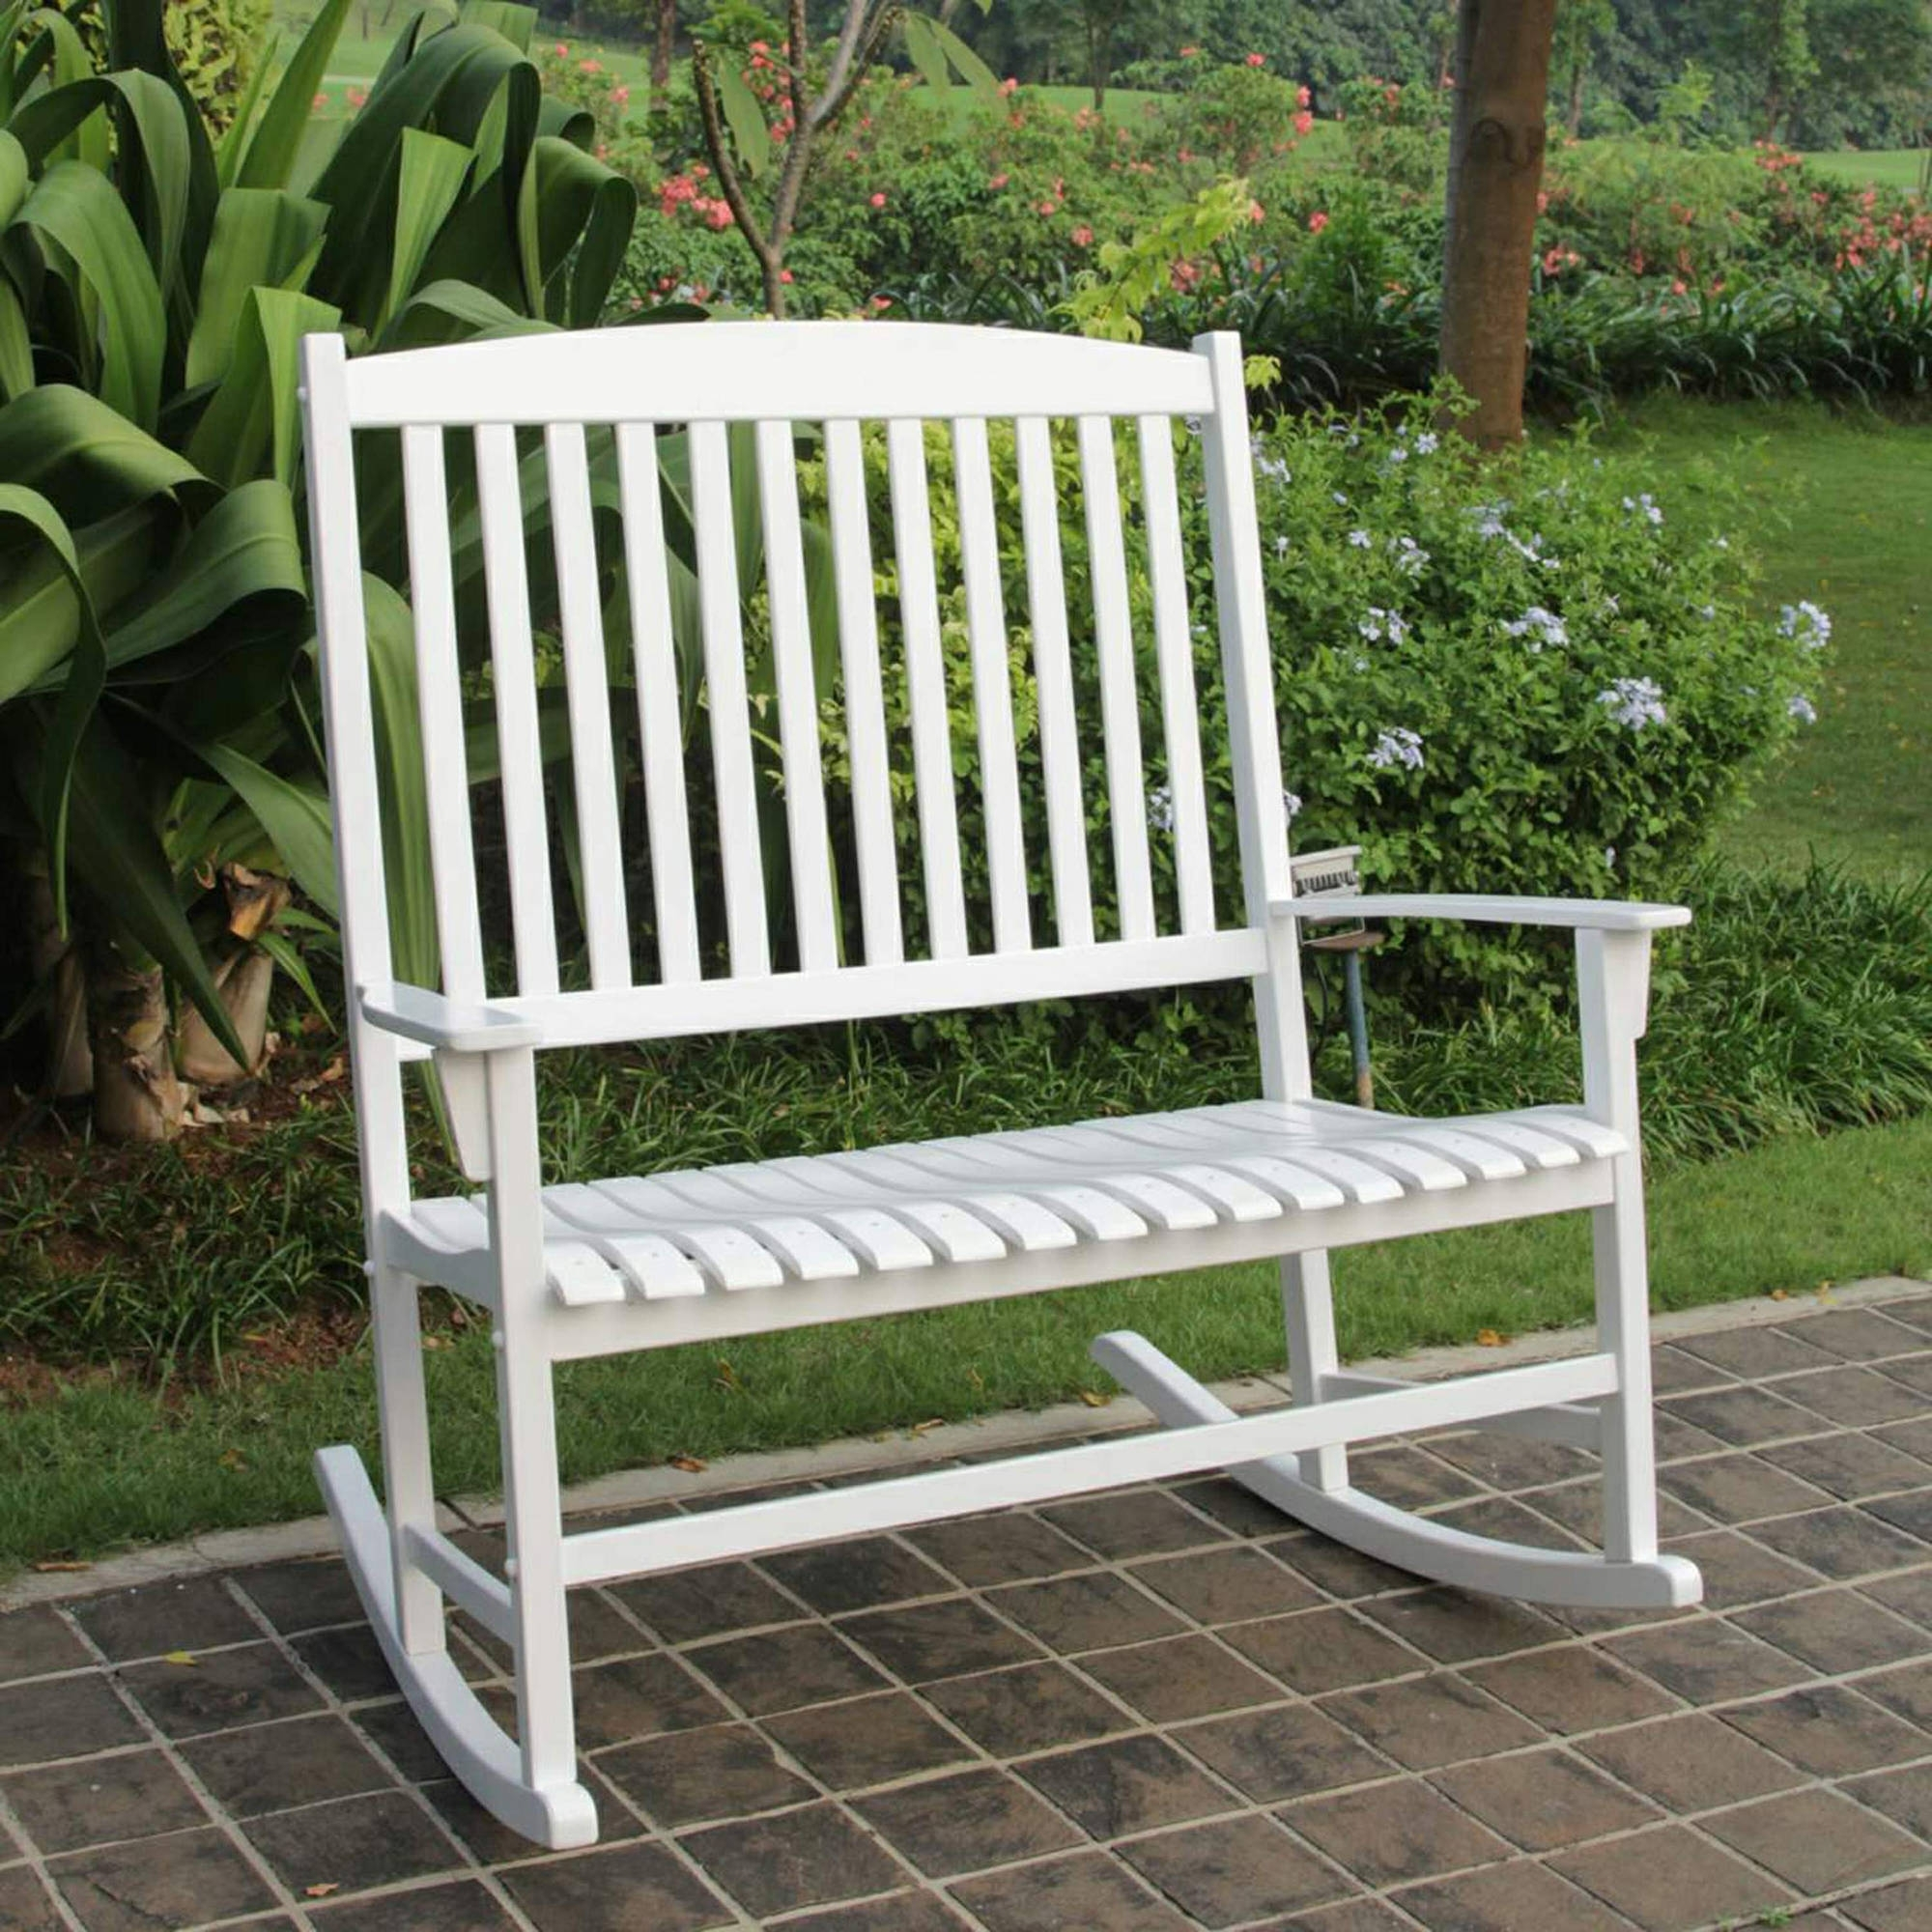 Current Patio Loveseat White Hardwood Outdoor Rocking Chair For 2 Inside Patio Wooden Rocking Chairs (View 10 of 15)